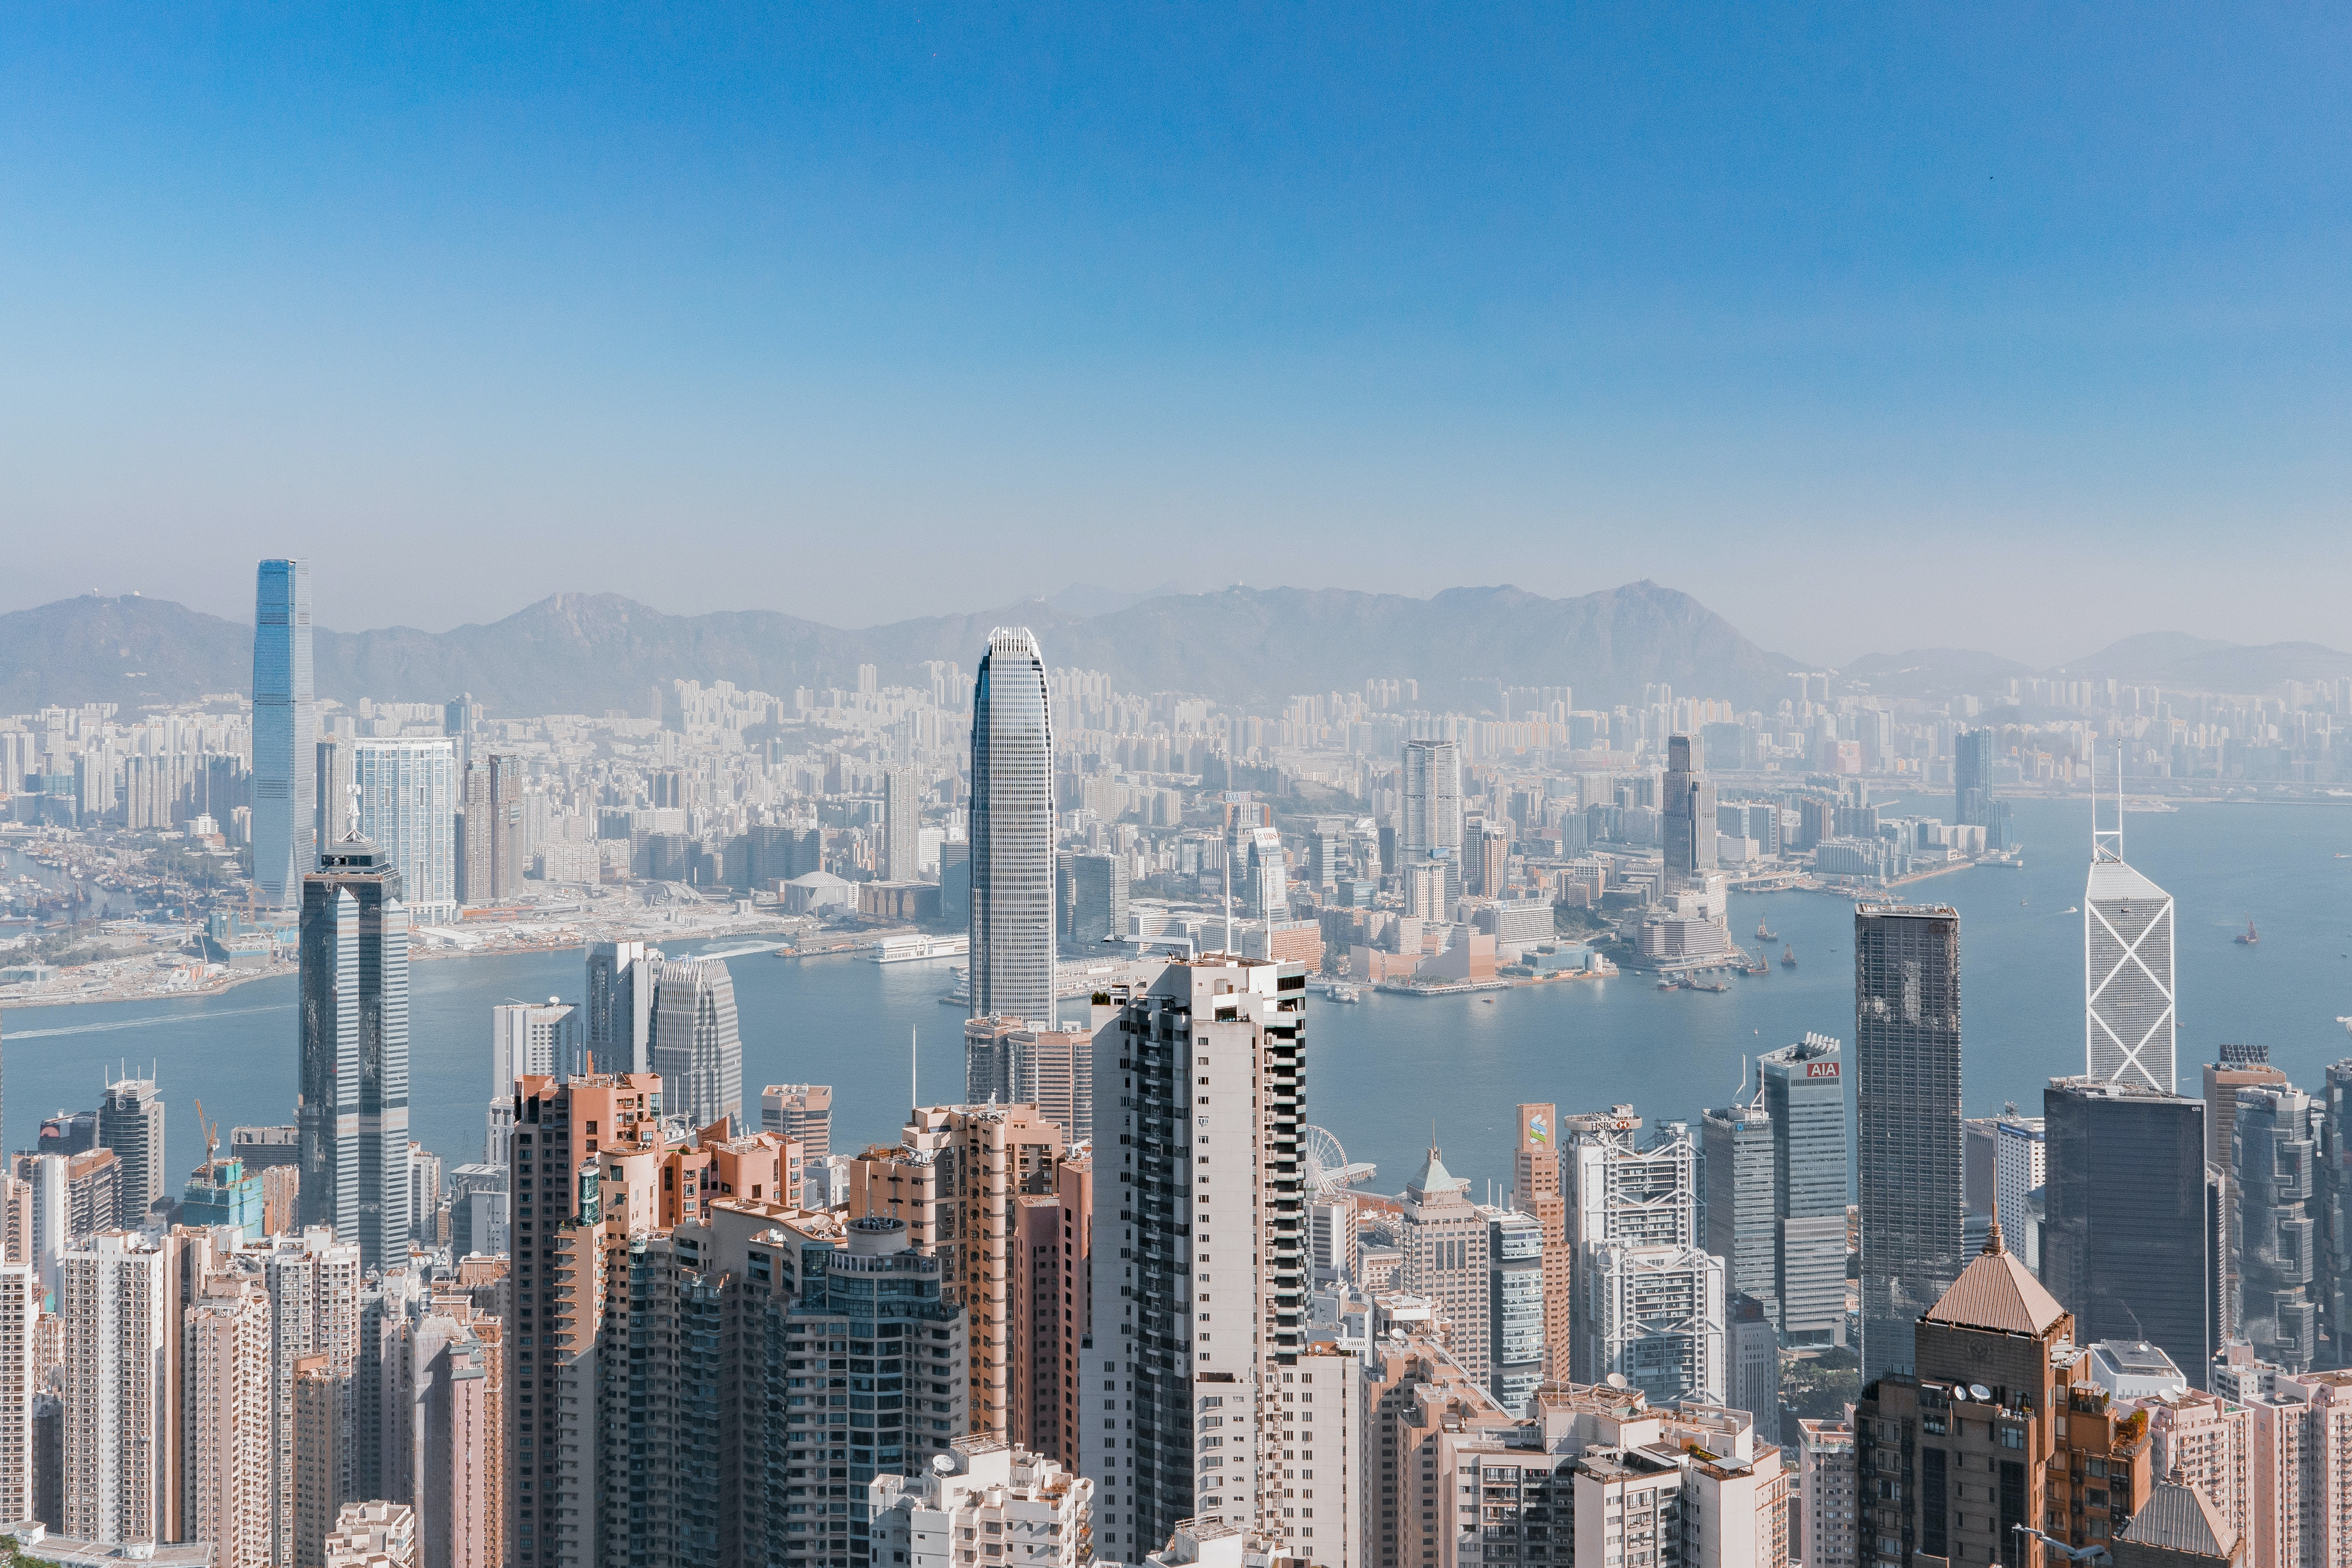 This is a photo of the Hong Kong Skyline